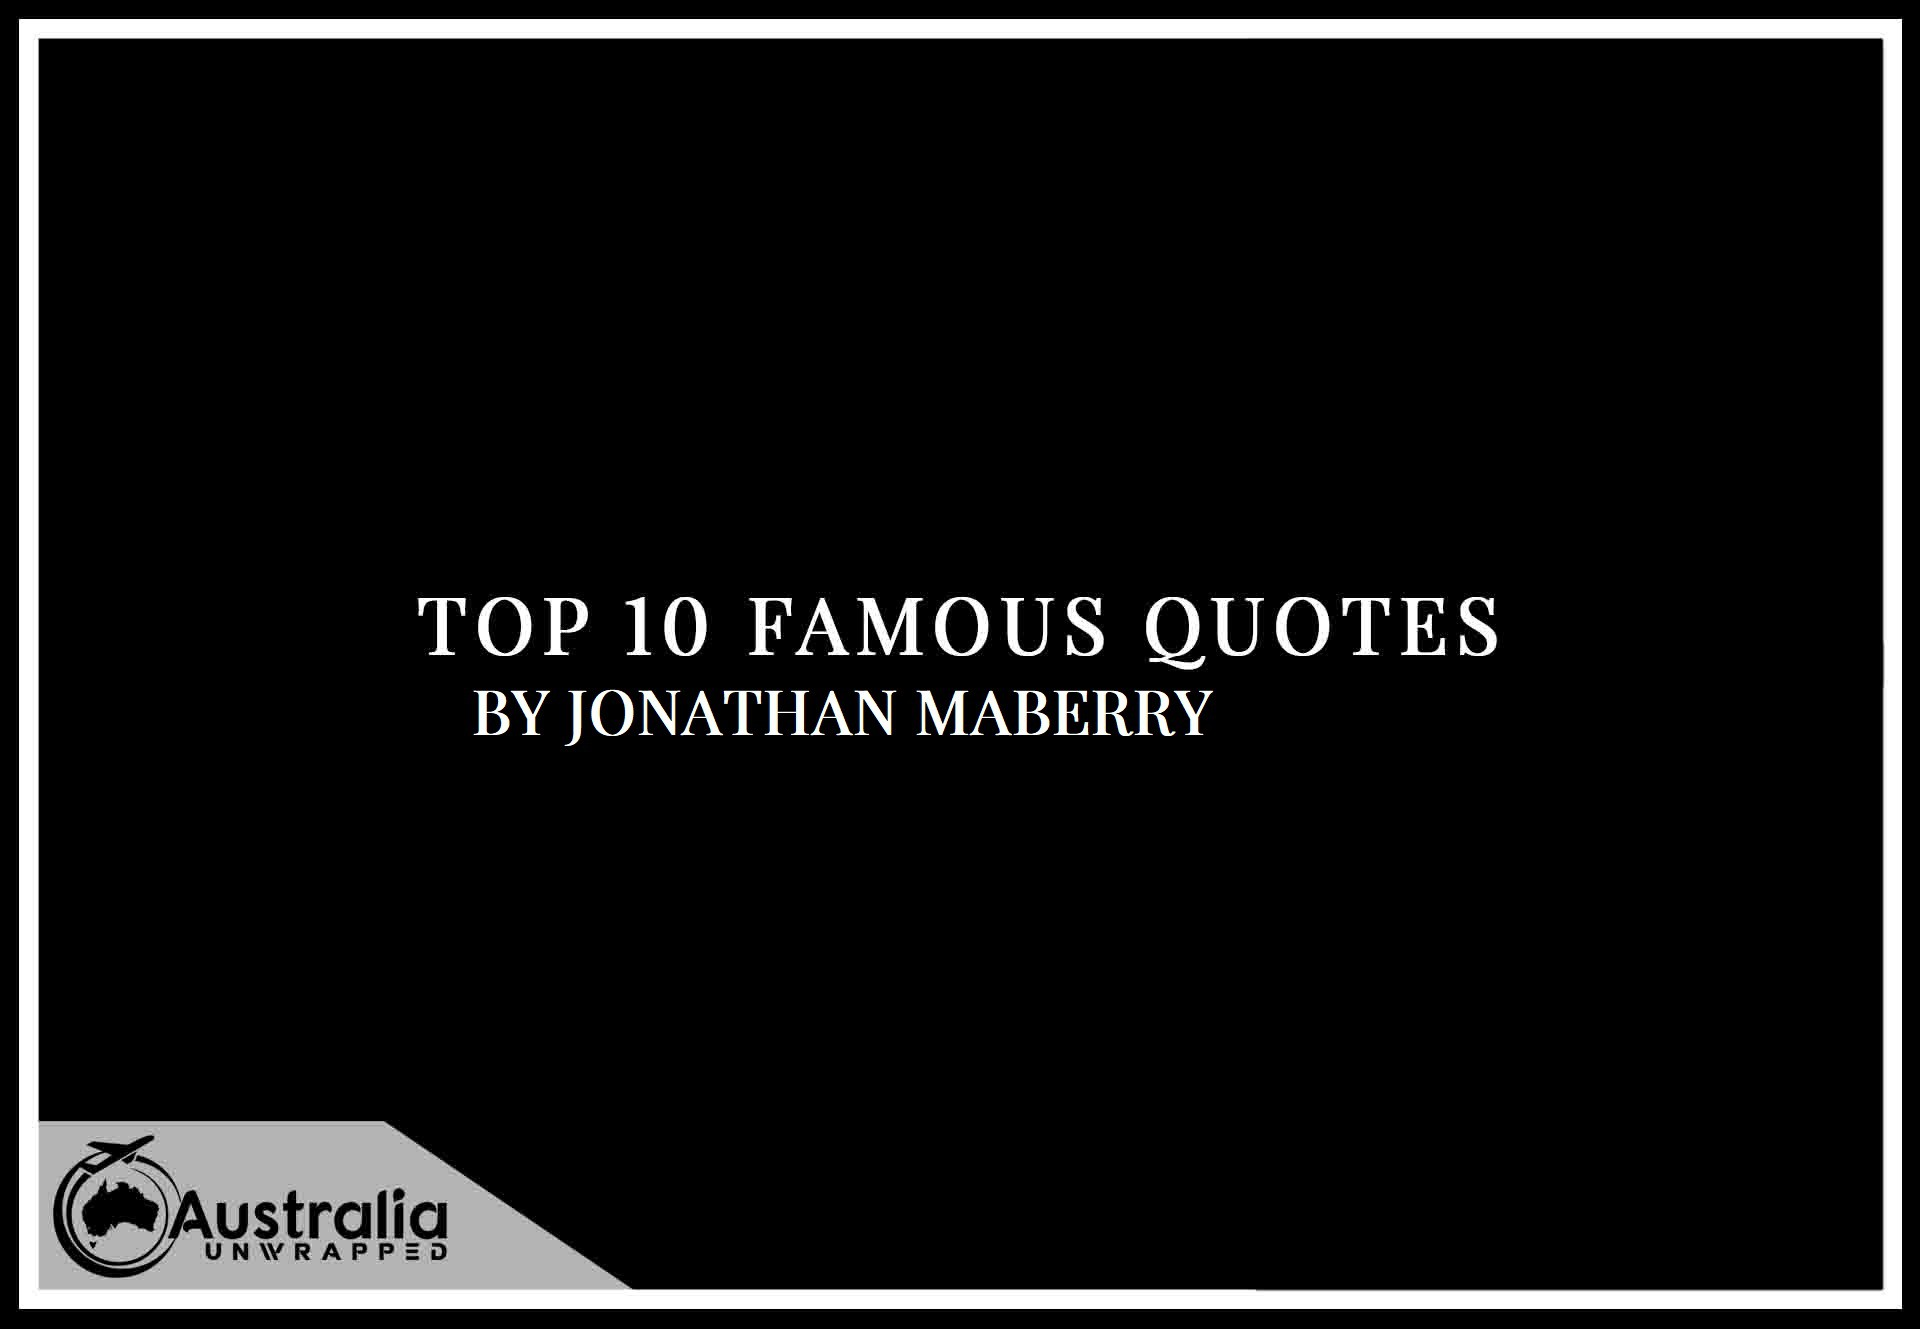 Top 10 Famous Quotes by Author Jonathan Maberry